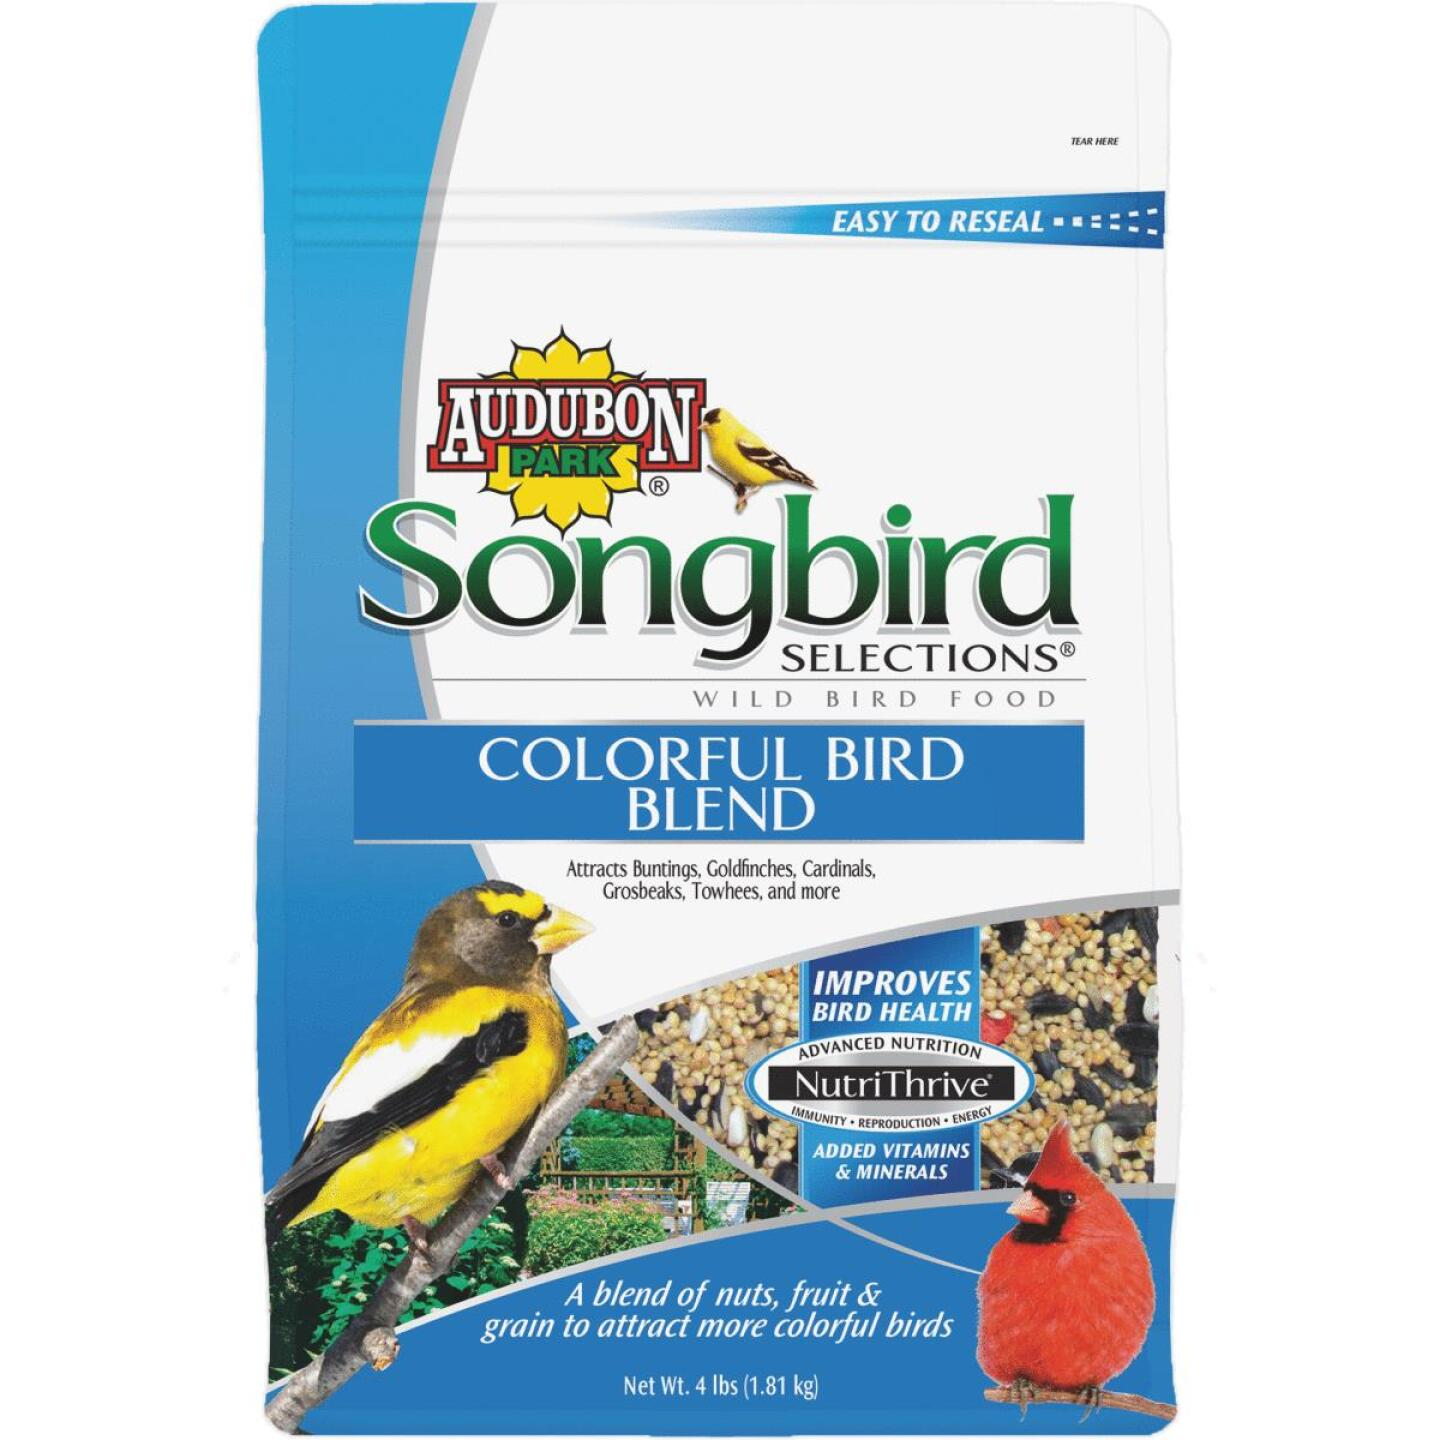 Audubon Park Songbird Selections 4 Lb. Colorful Wild Bird Seed Image 1